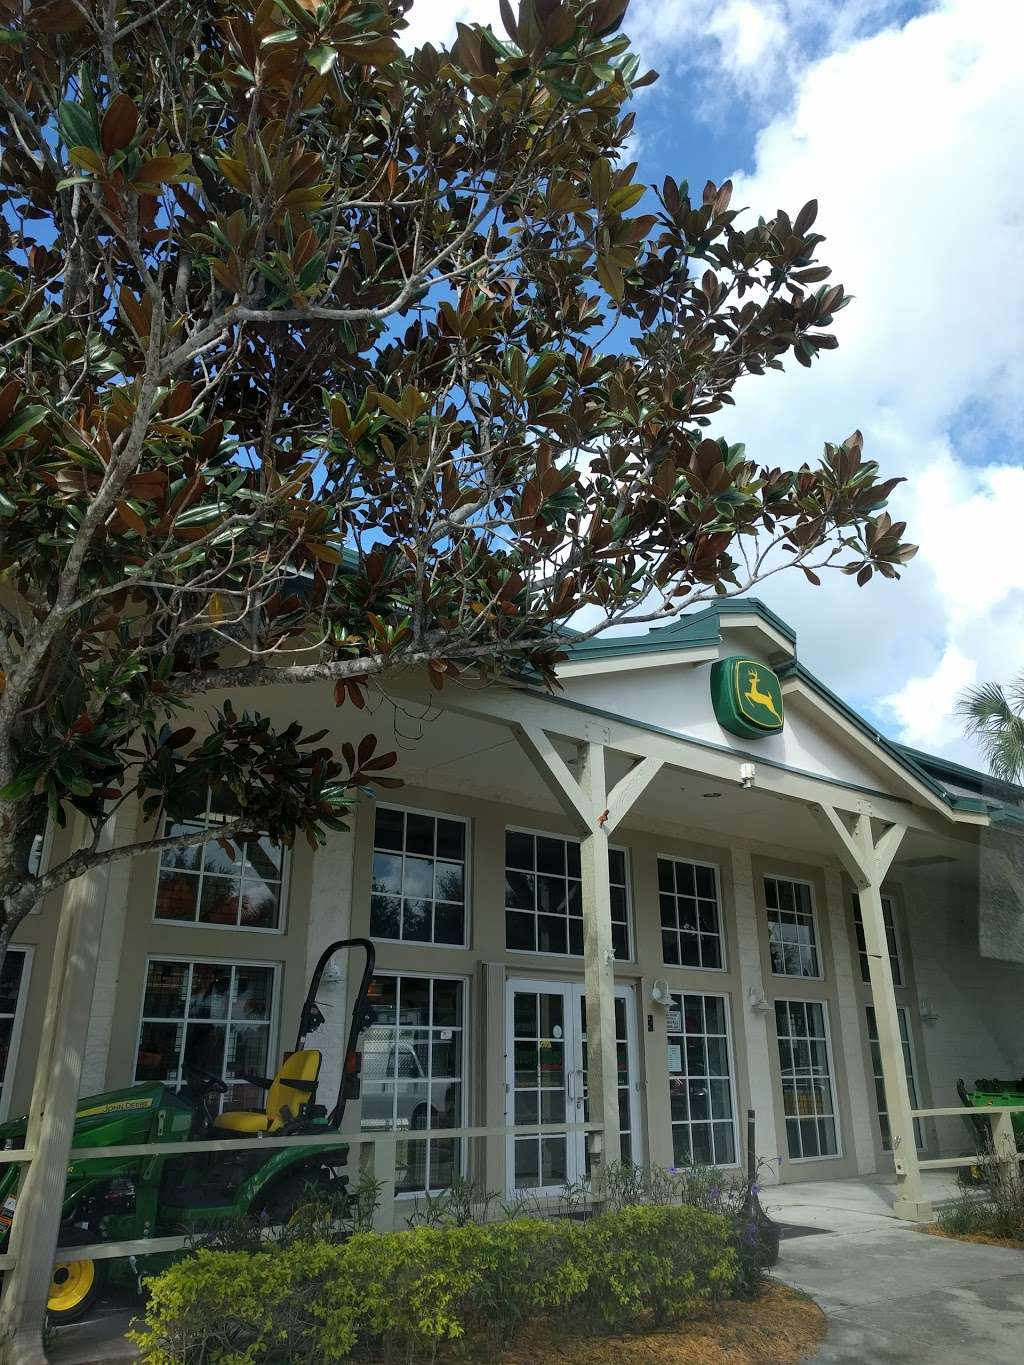 Everglades Equipment Group - store  | Photo 6 of 10 | Address: 13295 Southern Blvd, Loxahatchee, FL 33470, USA | Phone: (561) 784-4000